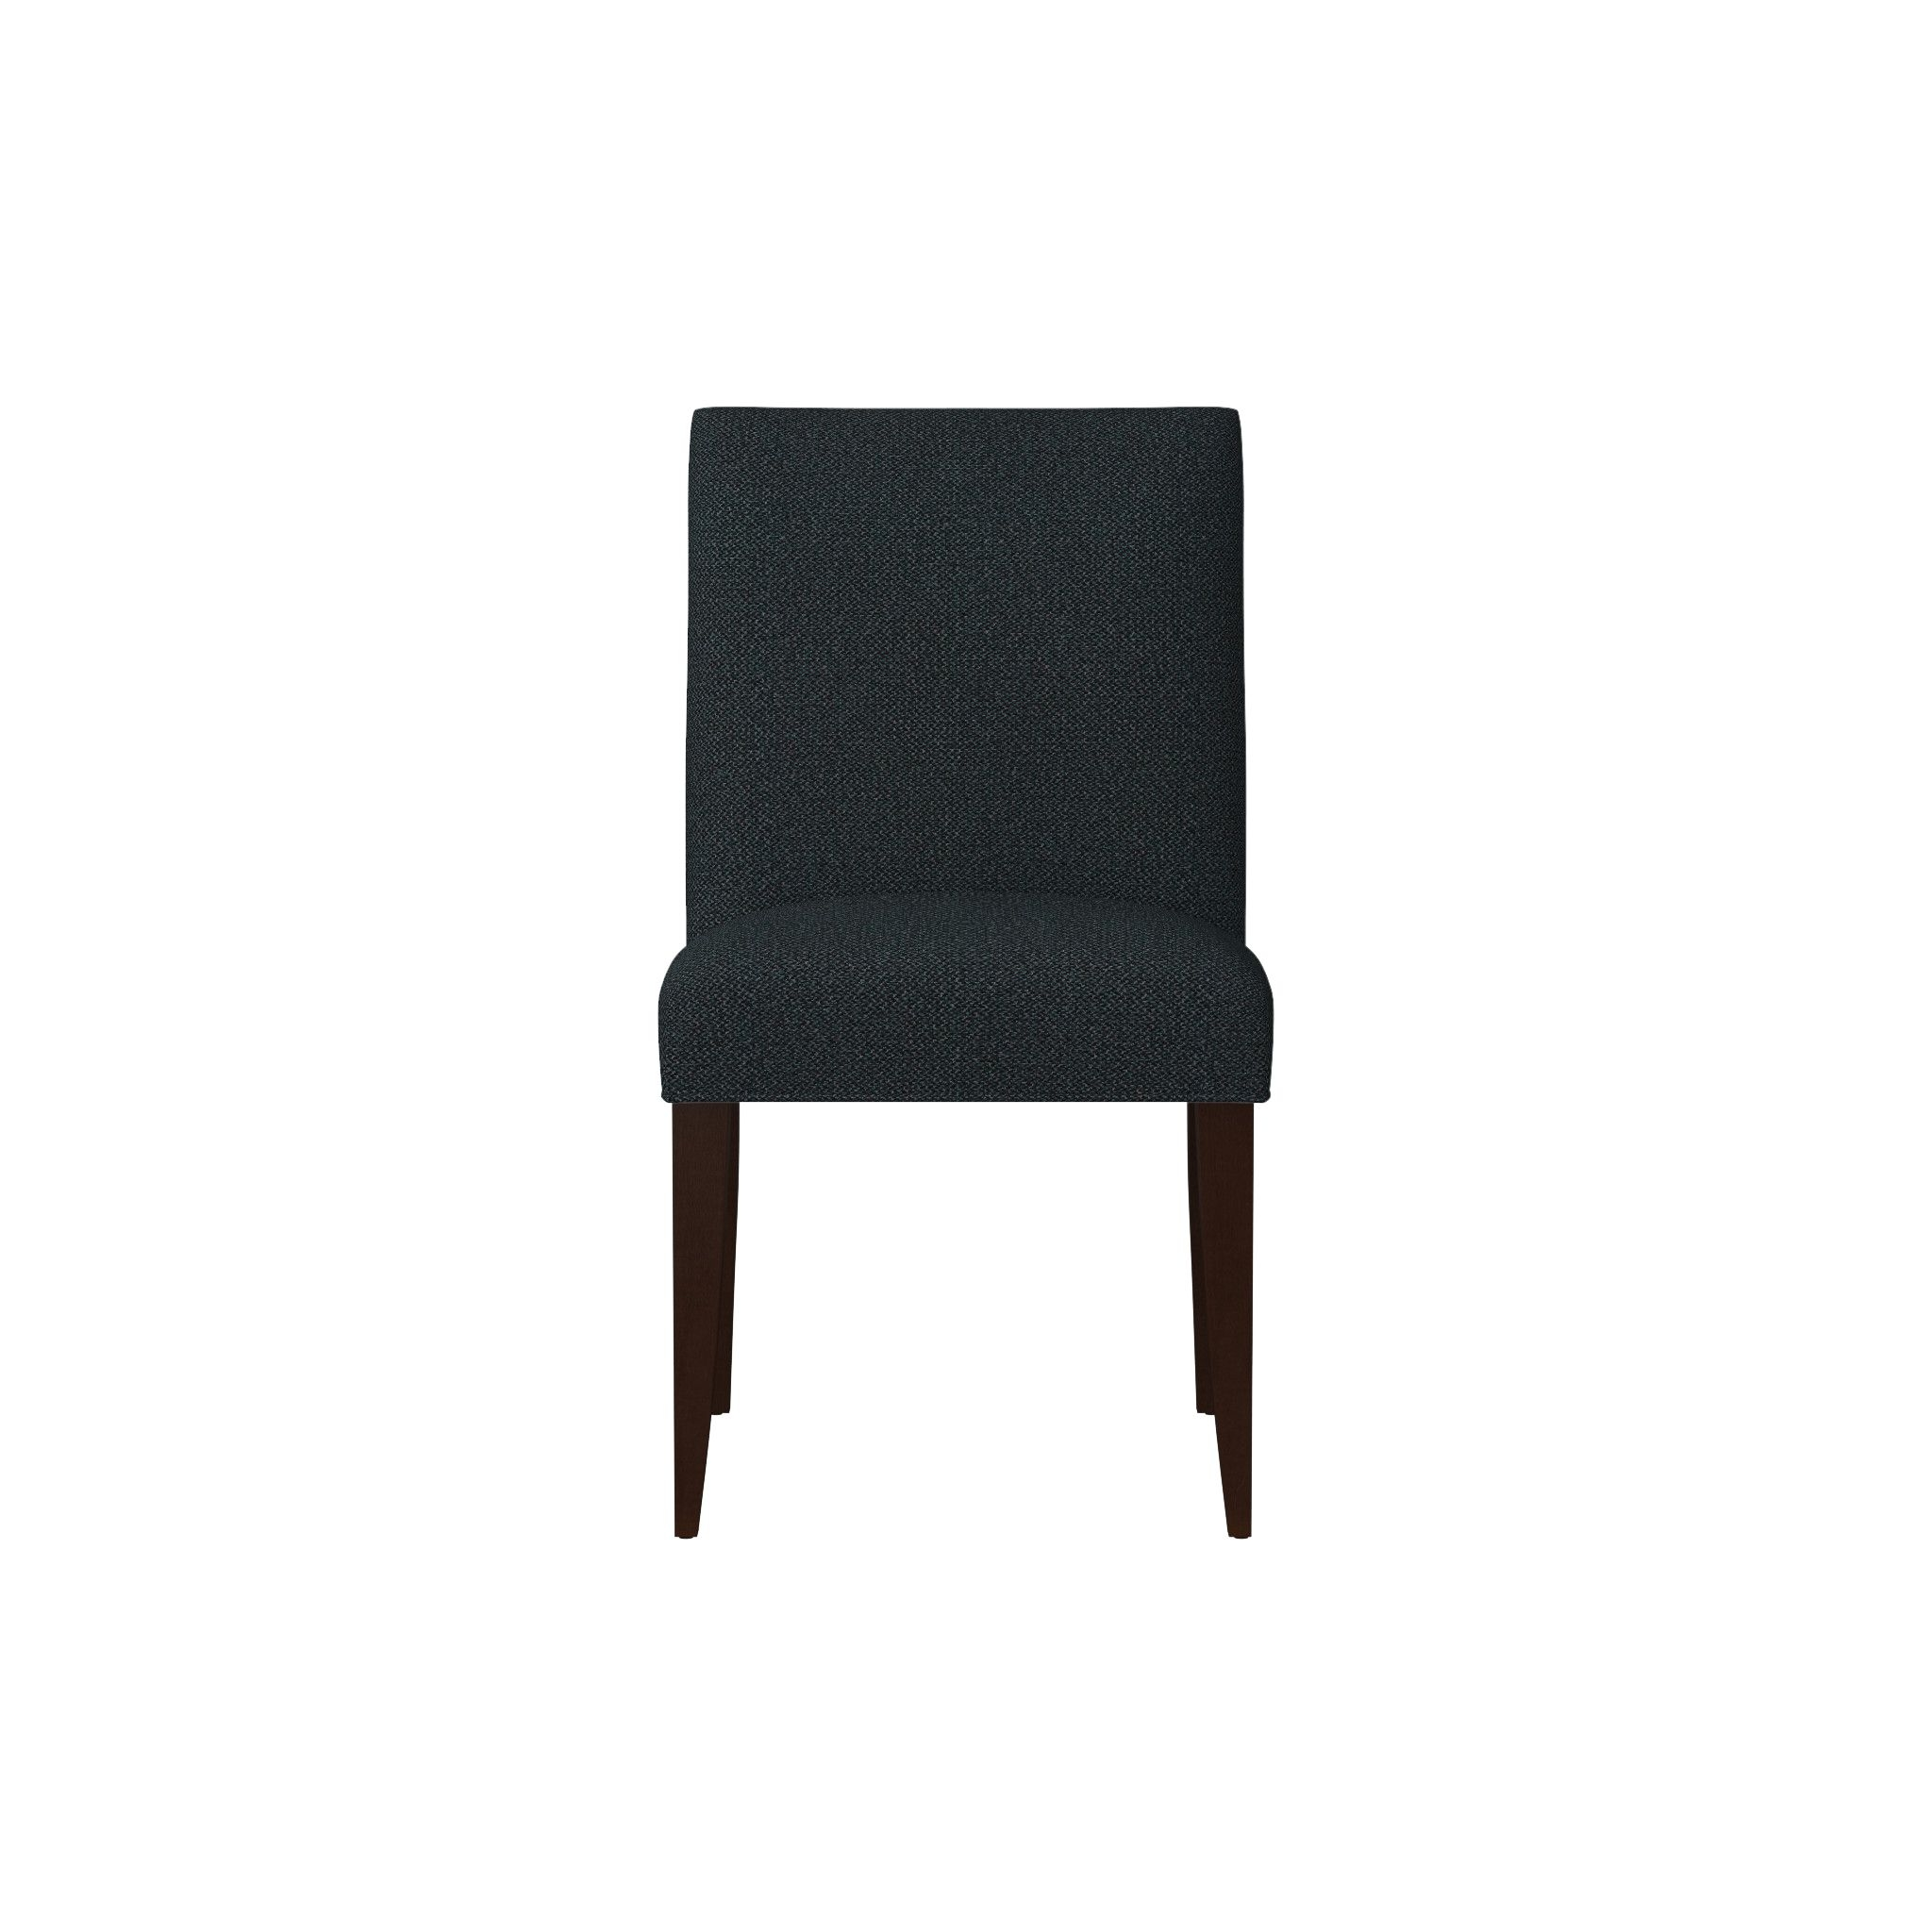 Newest Armless Oatmeal Dining Chairs Within Miles Upholstered Dining Chair + Reviews (View 9 of 20)